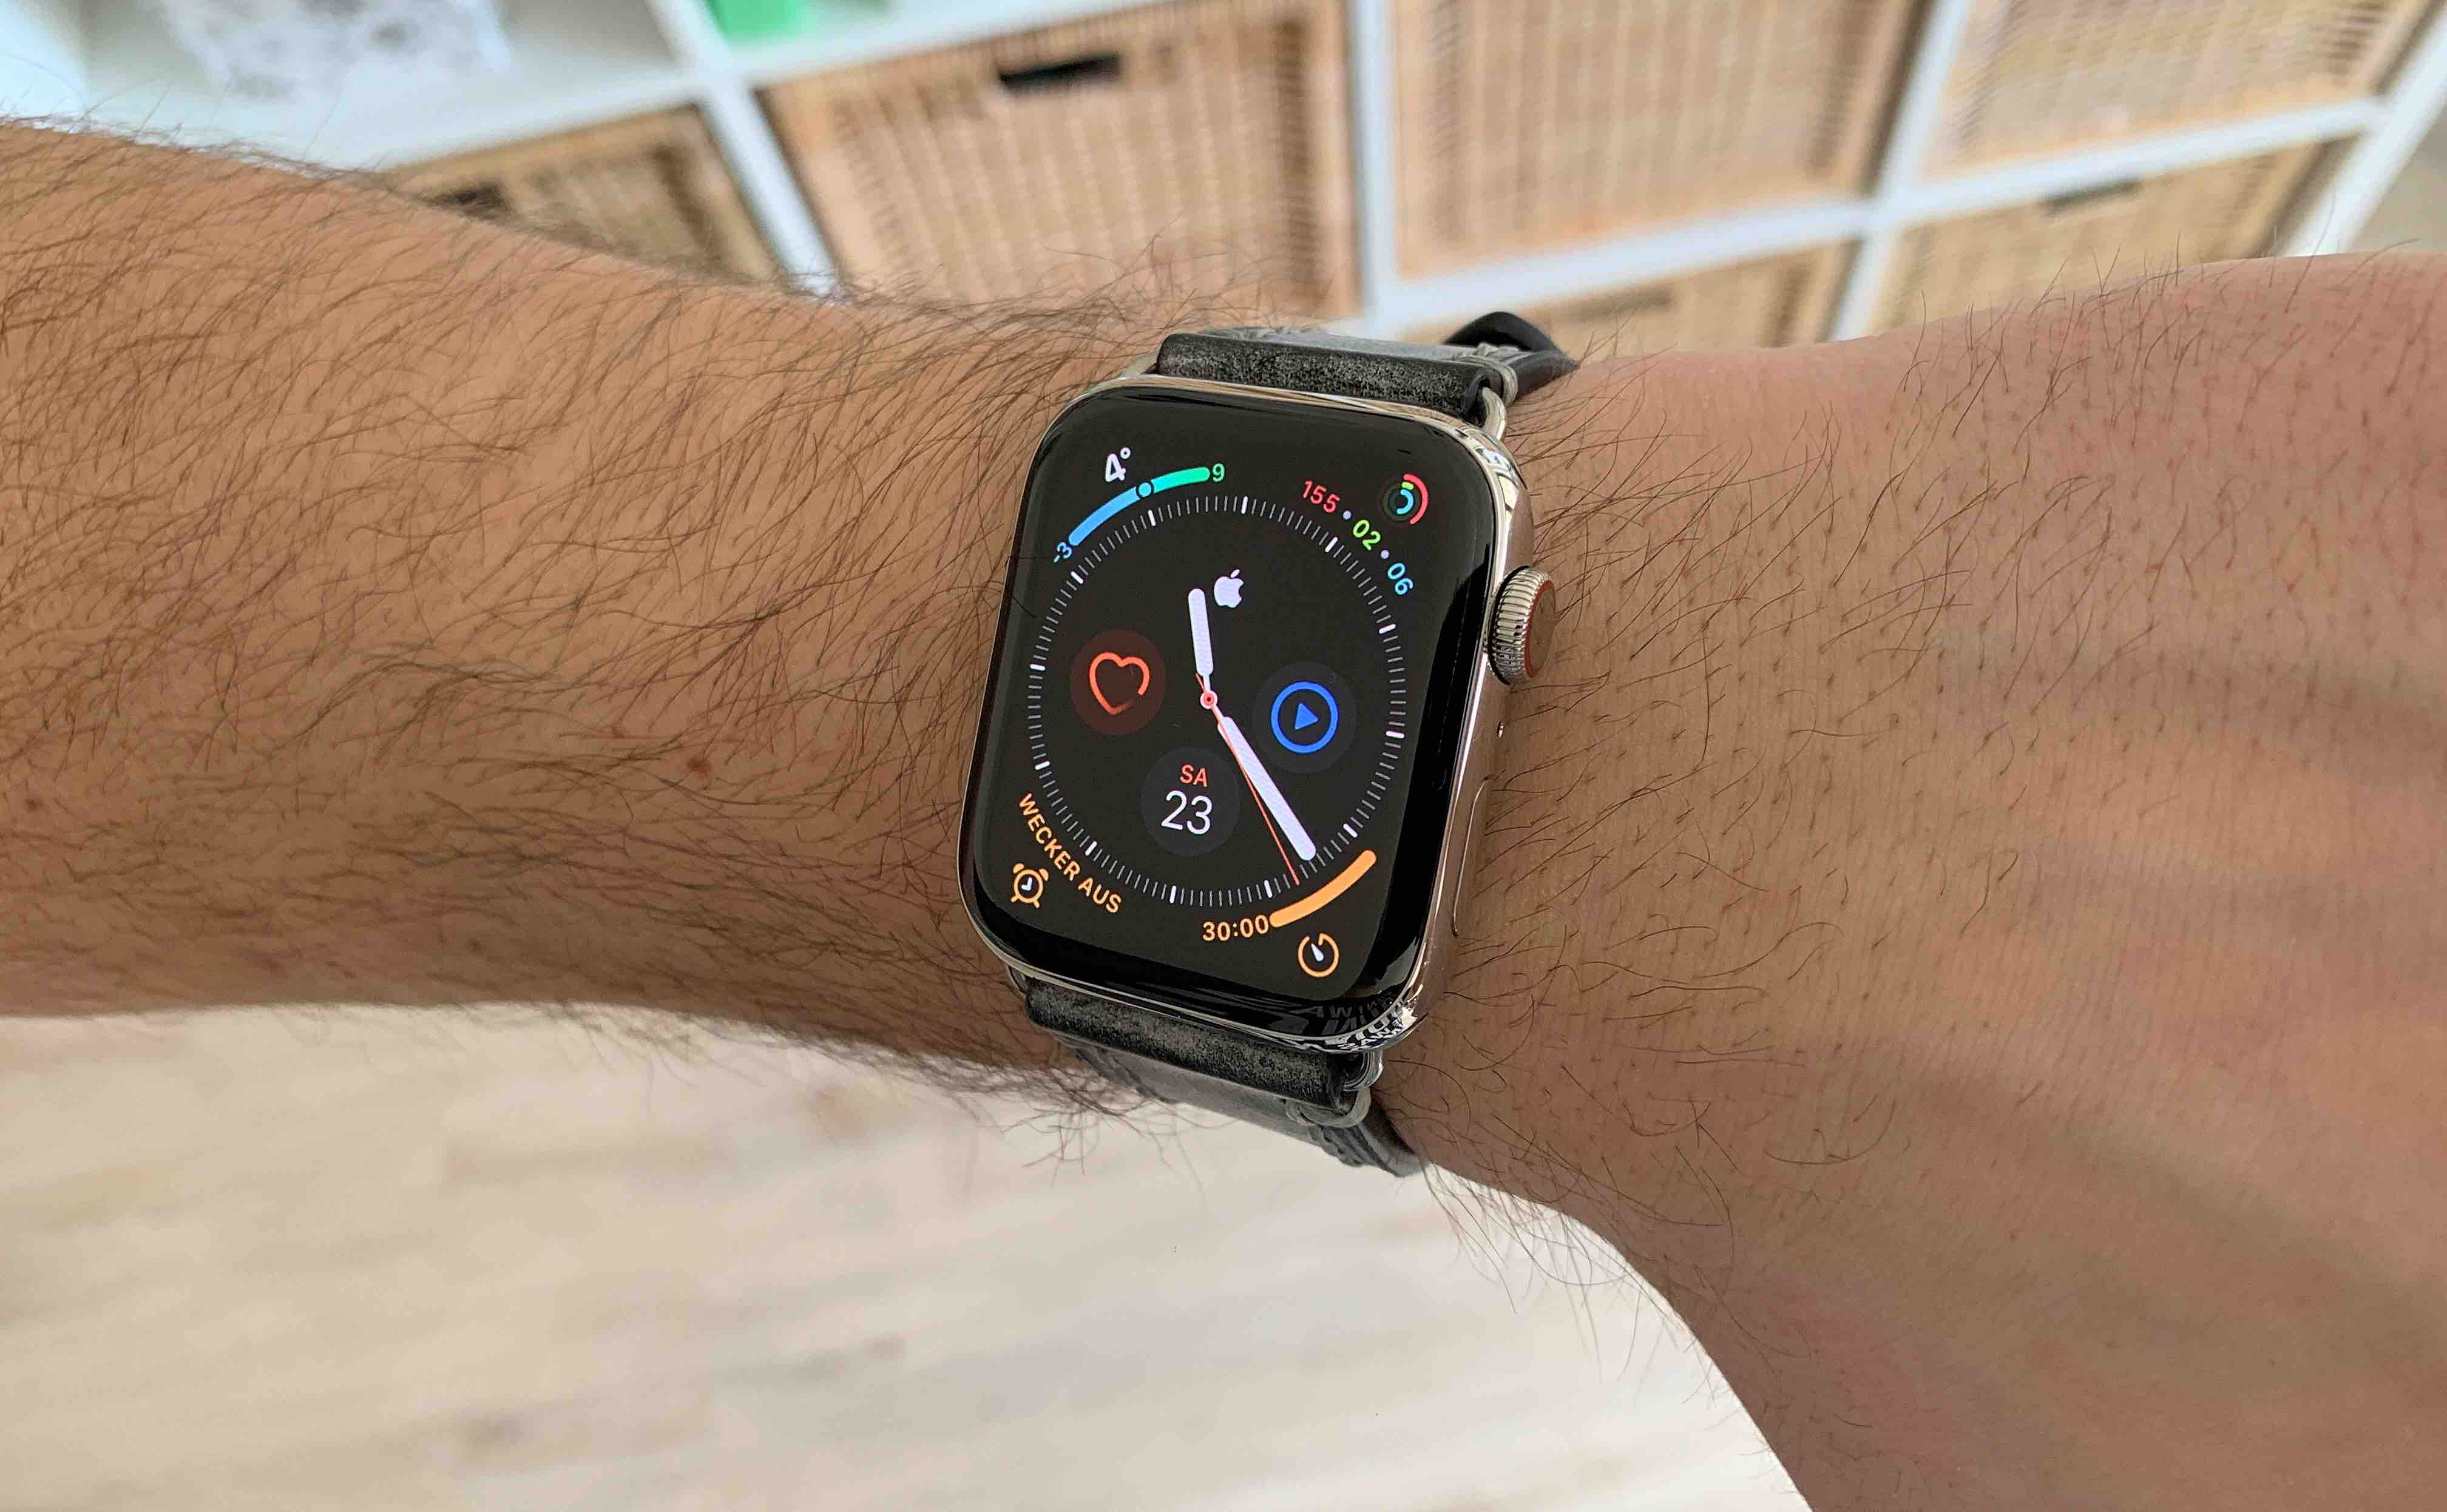 Maikes_Apple_Watch_Armbänder_Review_Leder3 Echtlederarmbänder für die Apple Watch von Maikes